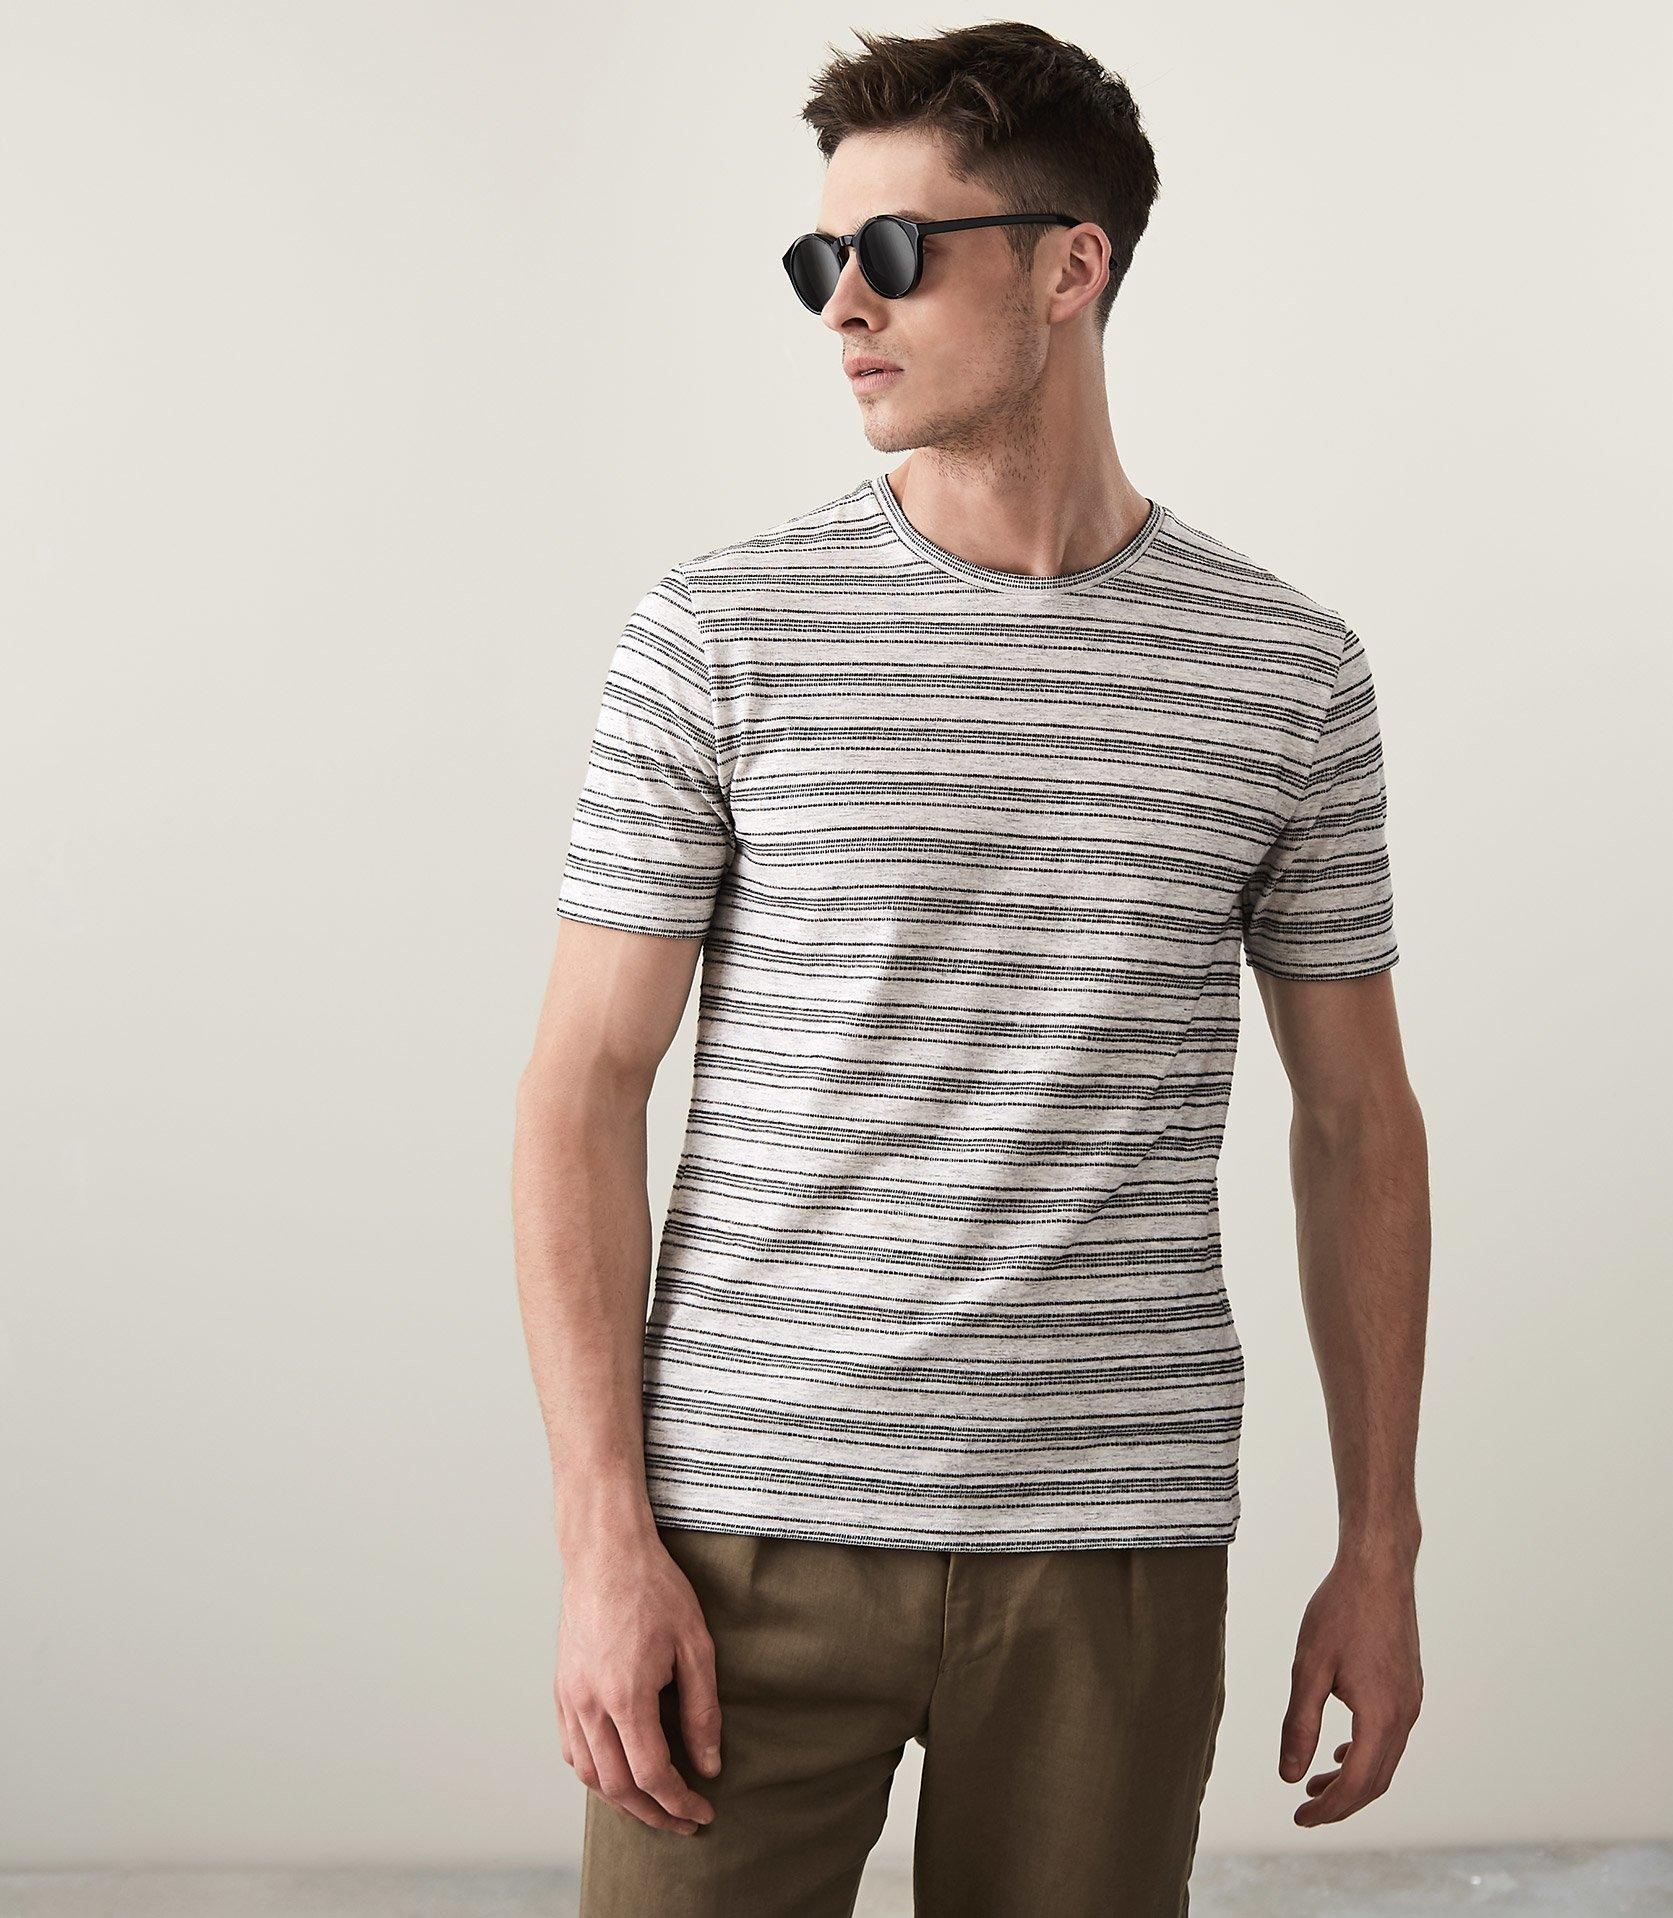 87b765b0a90 Lyst - Reiss Catania - Striped Crew Neck T-shirt in Gray for Men